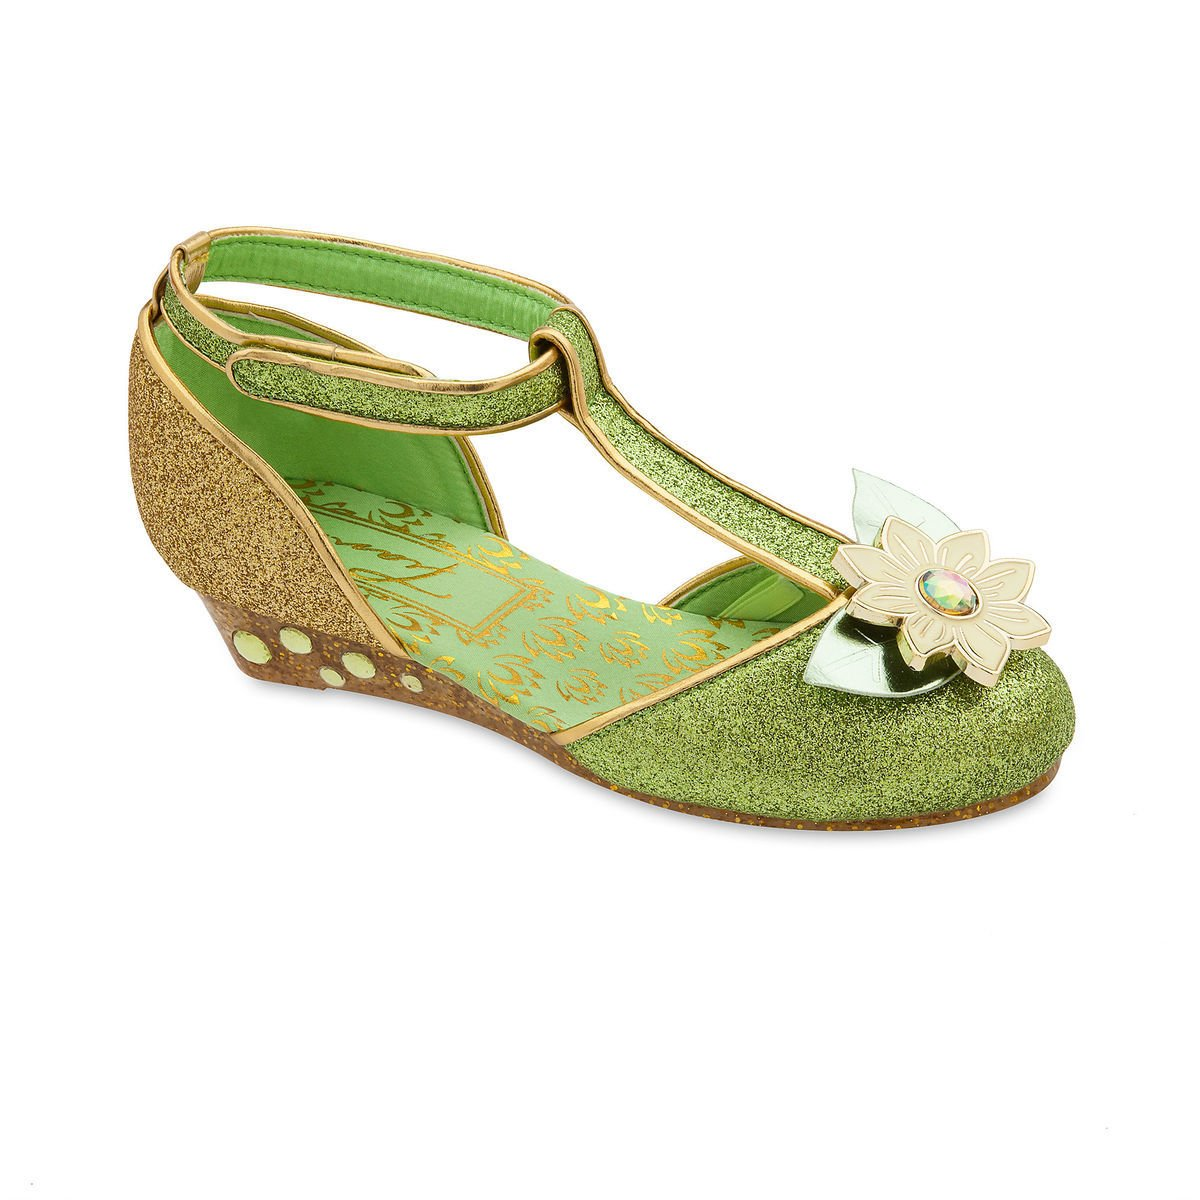 Disney Princess Tiana Costume Shoes for Kids - Green